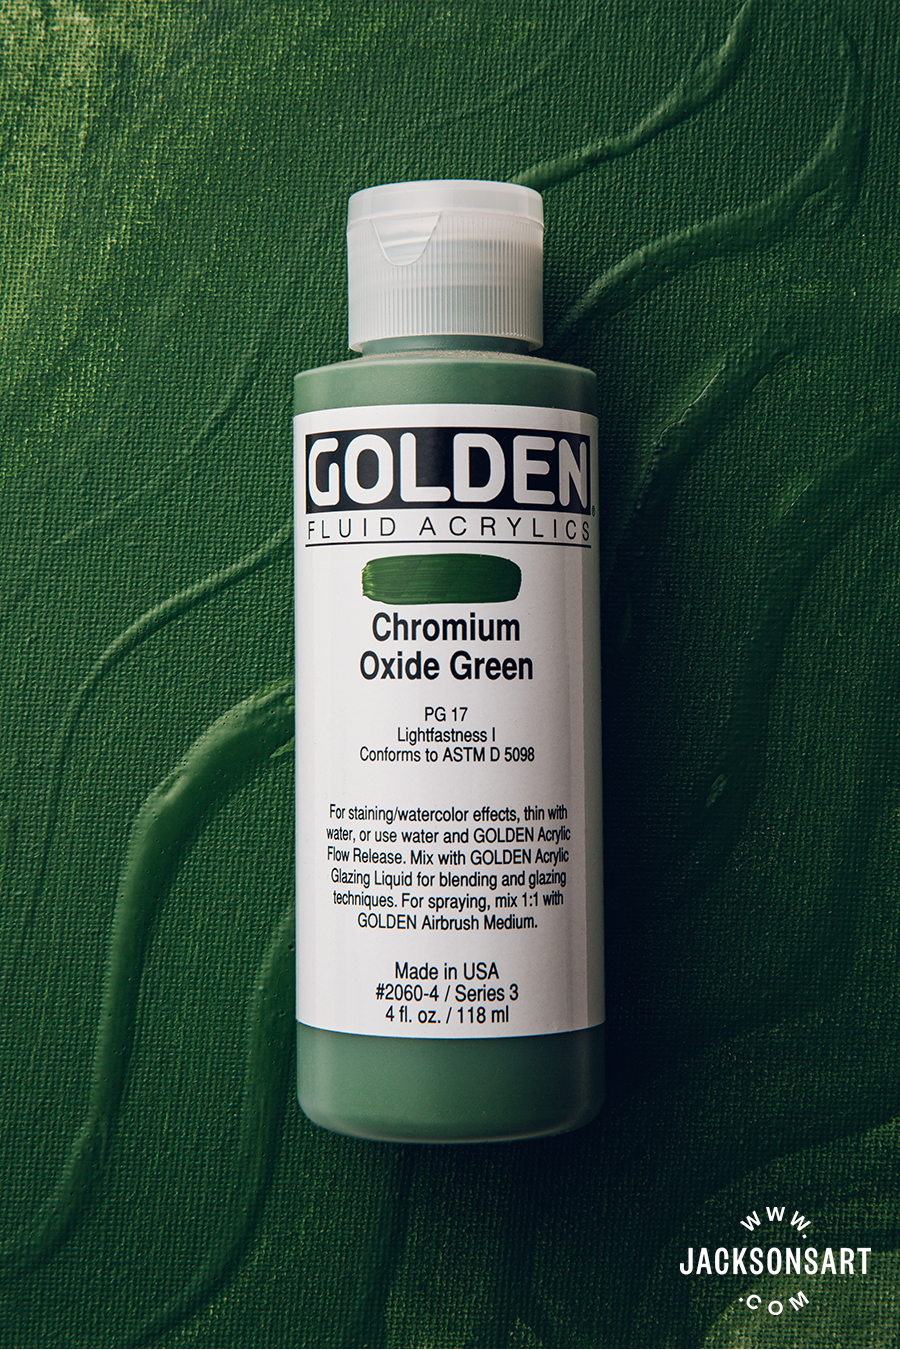 Golden Fluid Acrylic Chromium Oxide Green 118 ml